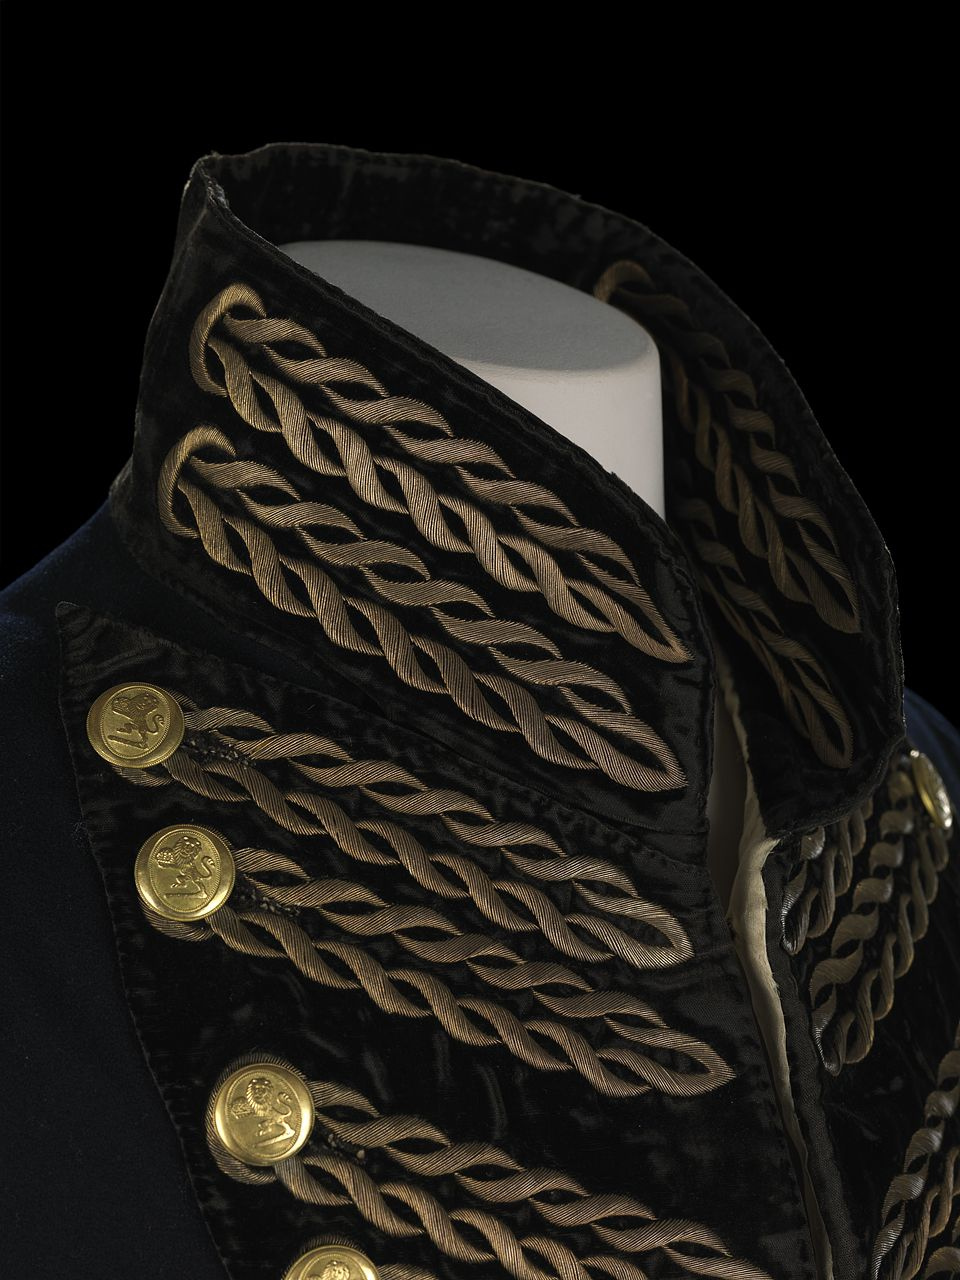 The coat has a two exterior pocket flaps, with three points. Each pocket has four buttons with faux buttonholes outlined with metal thread embroidery. The exterior pockets are actually dummy pockets, the actual pocket is in the tails and is lined with linen. The sleeves are also lined with white silk twill, and the cuffs are of black velvet with four buttons arranged in pairs, the button holes are outlined with metal thread embroidery.